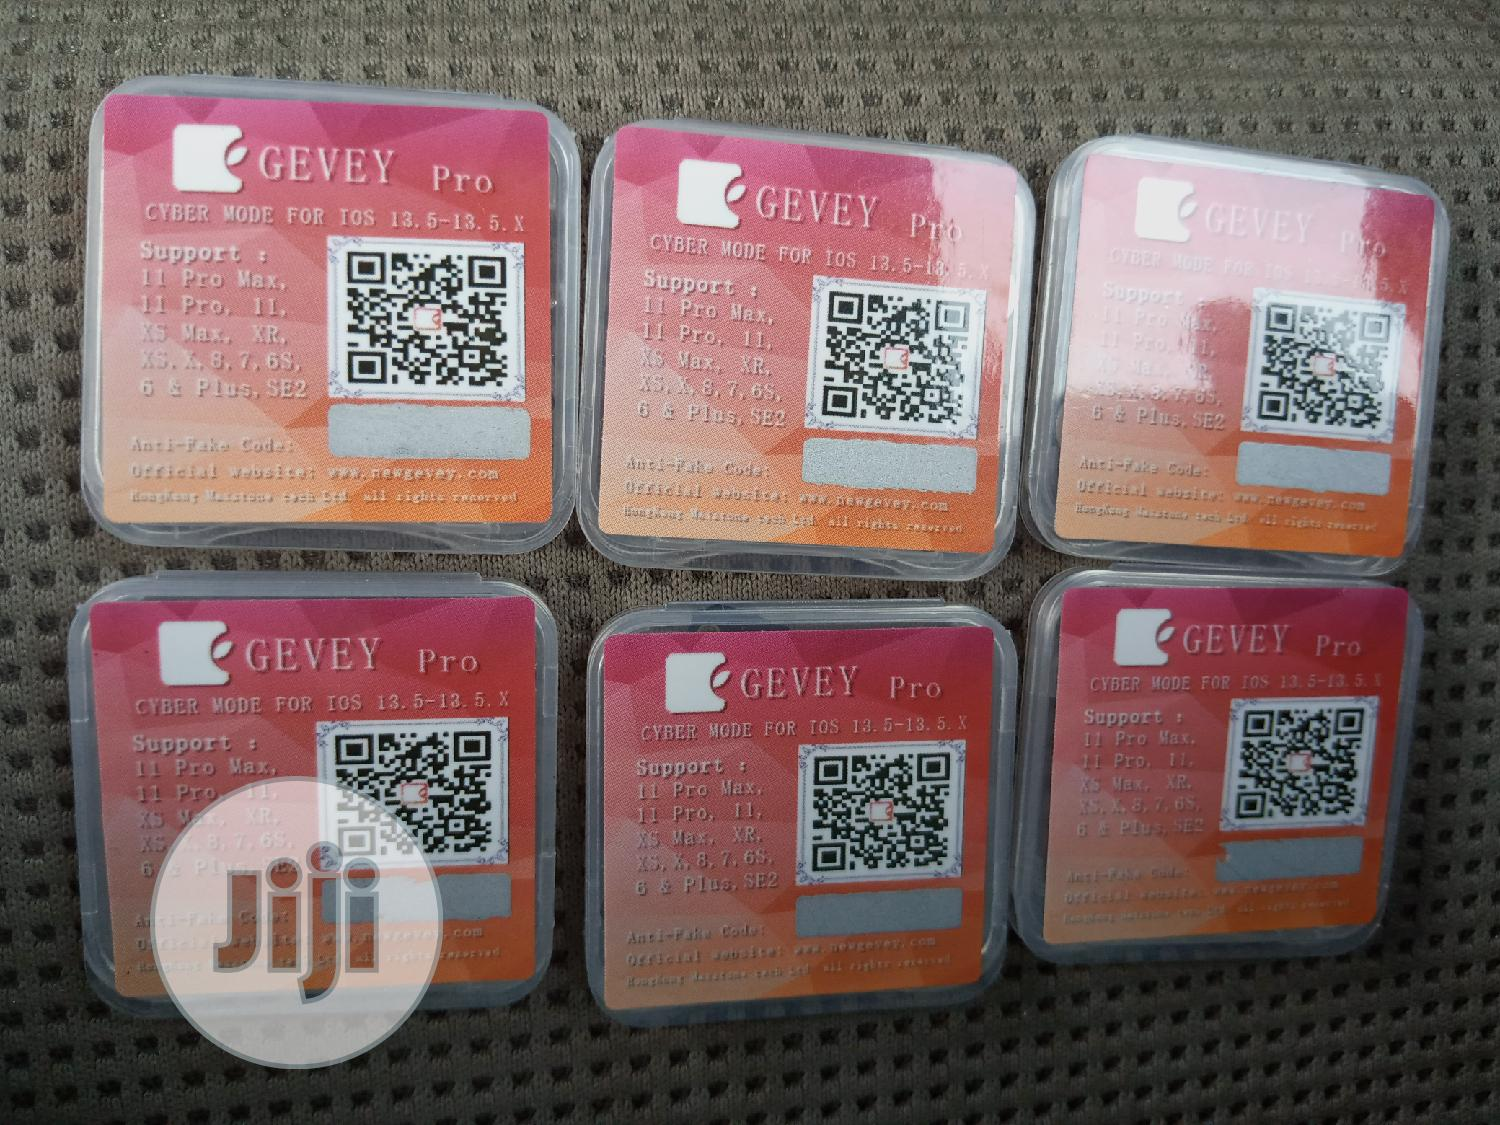 Gevey iPhone Network Unlock Chips | Accessories for Mobile Phones & Tablets for sale in Amuwo-Odofin, Lagos State, Nigeria